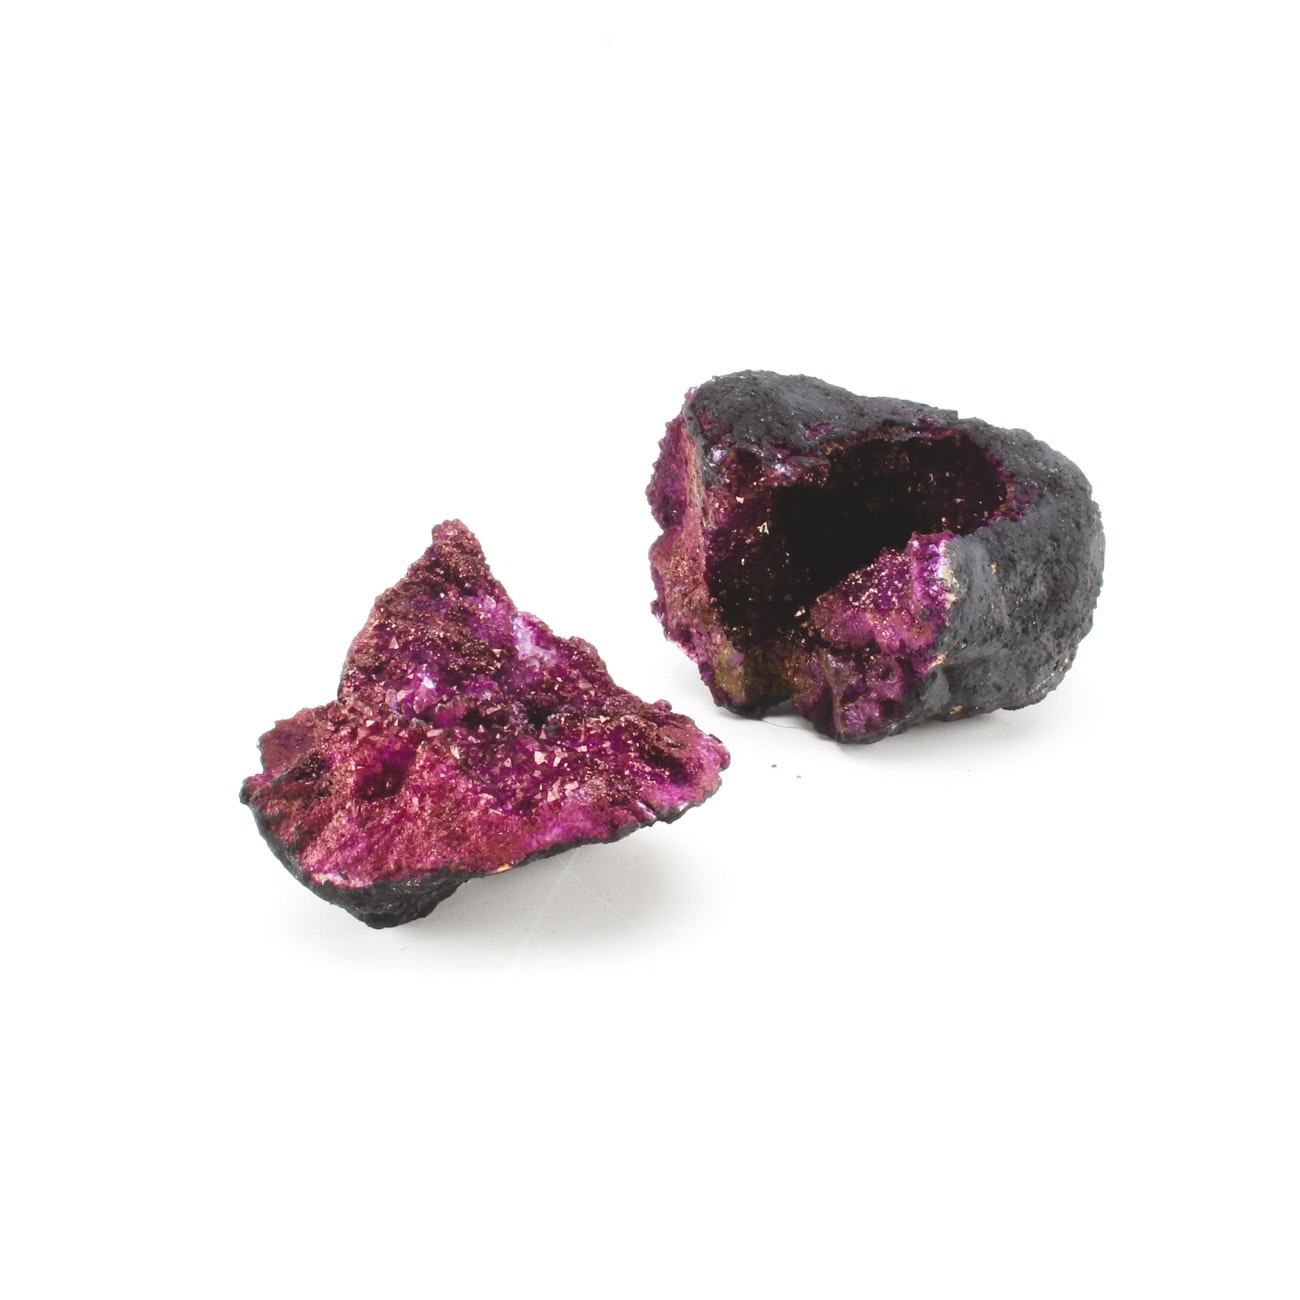 Pair of Purple Dyed Quartz Crystal Moroccan Geodes